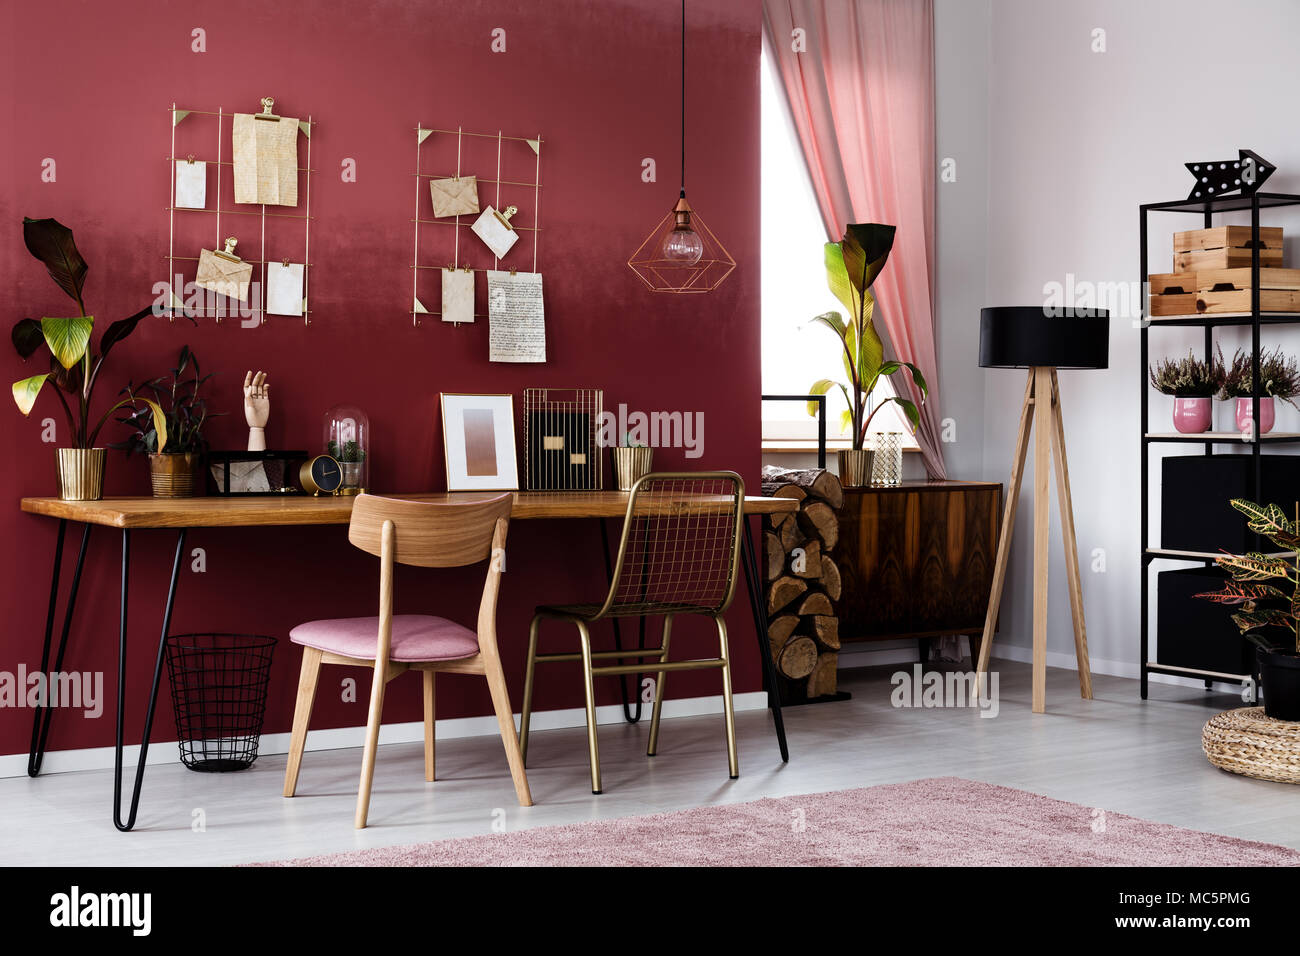 Plant And Wooden Lamp In Dark Red Home Office Interior With Chair At Desk With Poster Stock Photo Alamy